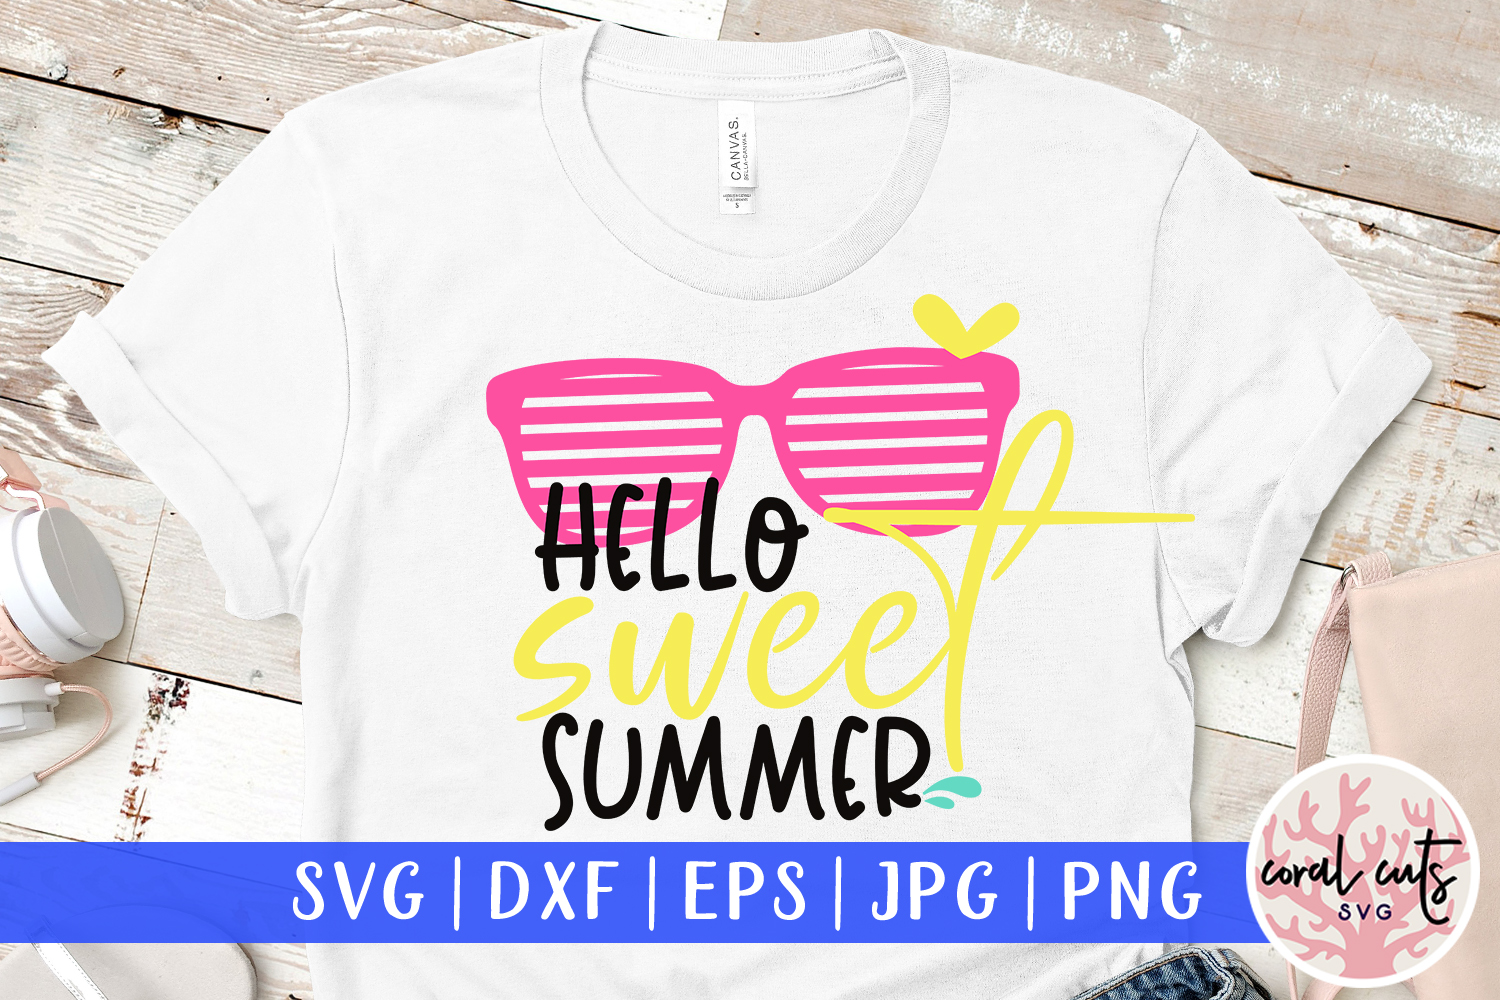 Download Free Hello Sweet Summer Svg Cut File Graphic By Coralcutssvg for Cricut Explore, Silhouette and other cutting machines.